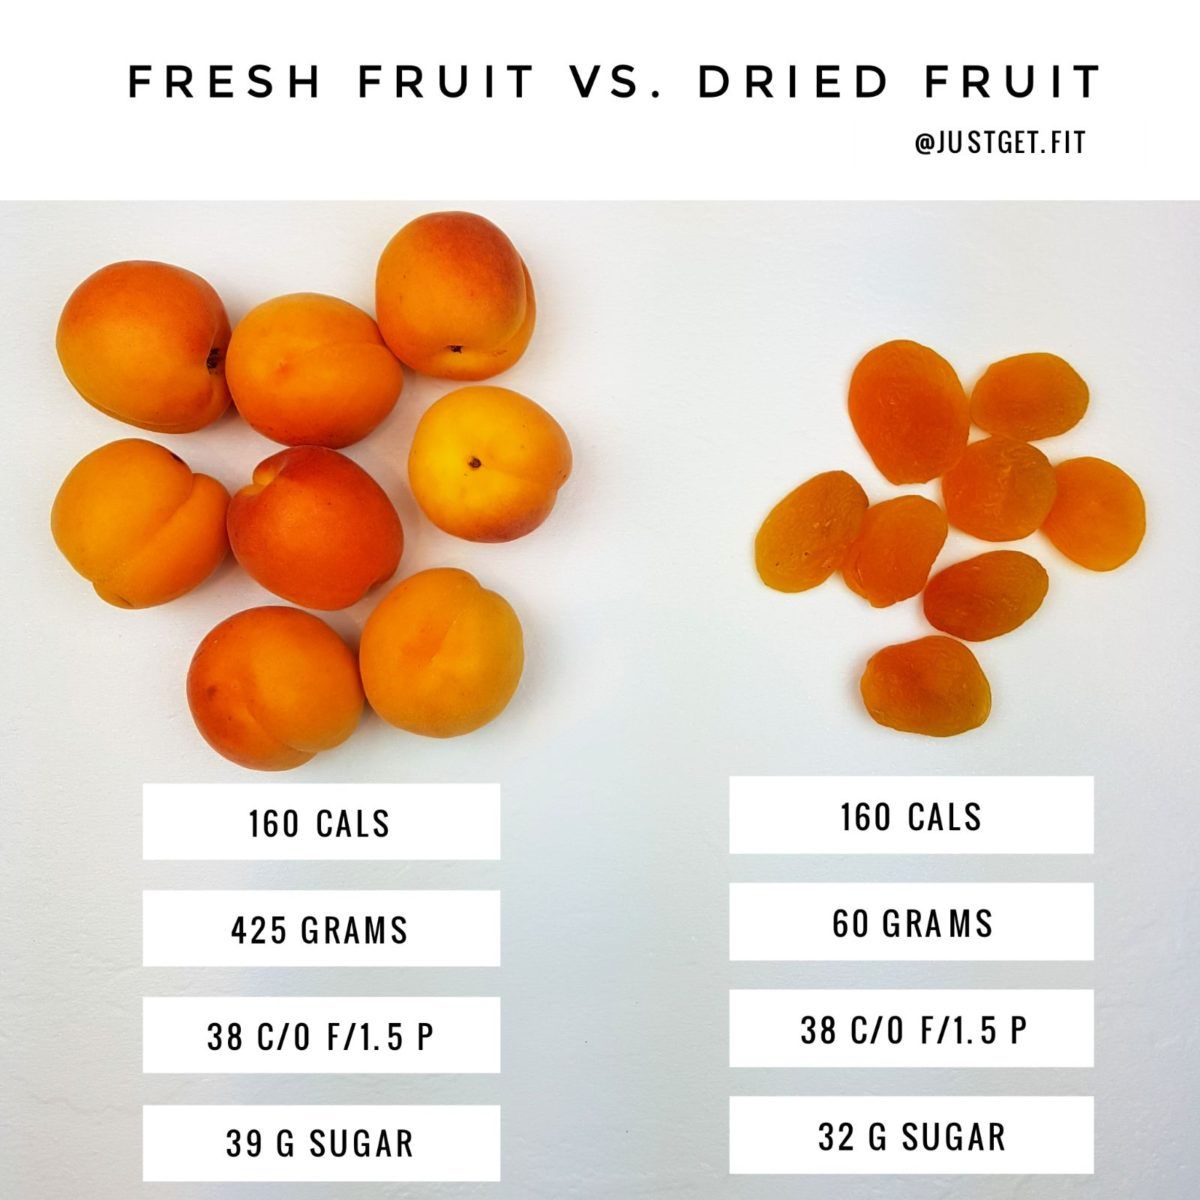 Fresh Fruit Vs Dried Fruit The Problem With Dried Fruit Is A Serving Size Is Never Really Enoug Carrots Nutrition Fruit Serving Size Calories In Strawberries